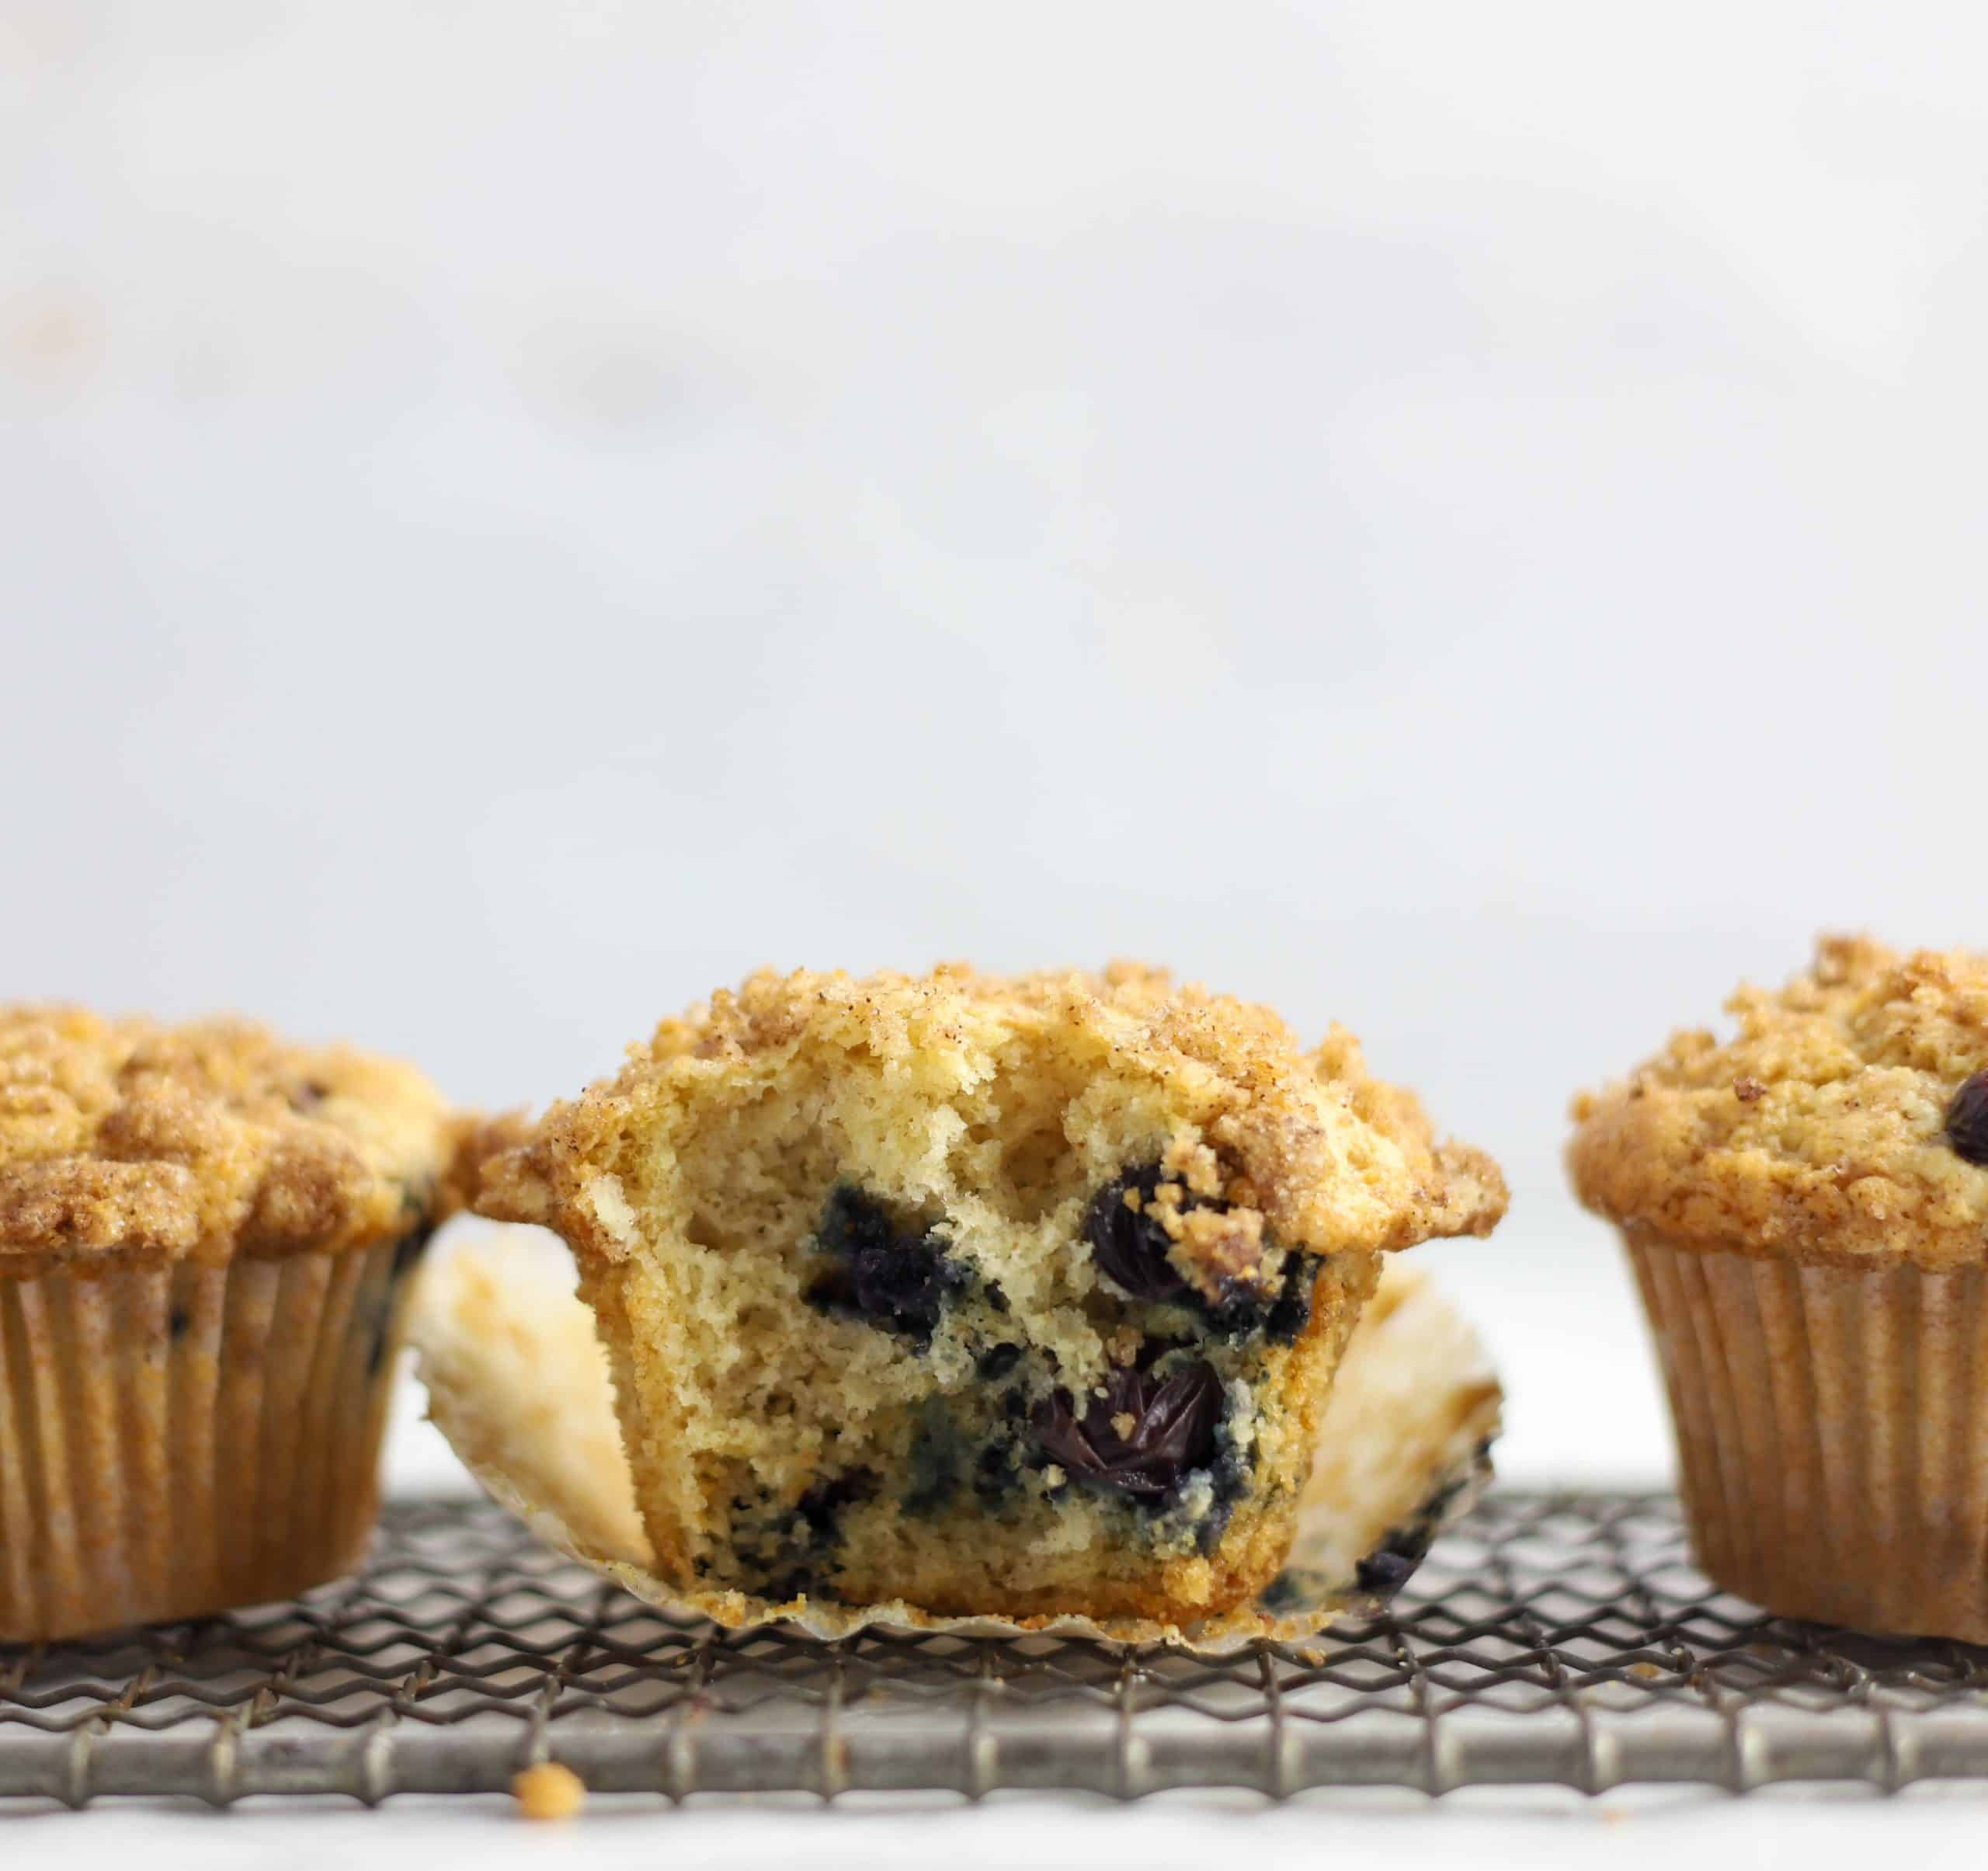 sourdough blueberry muffin with a bite taken out of it